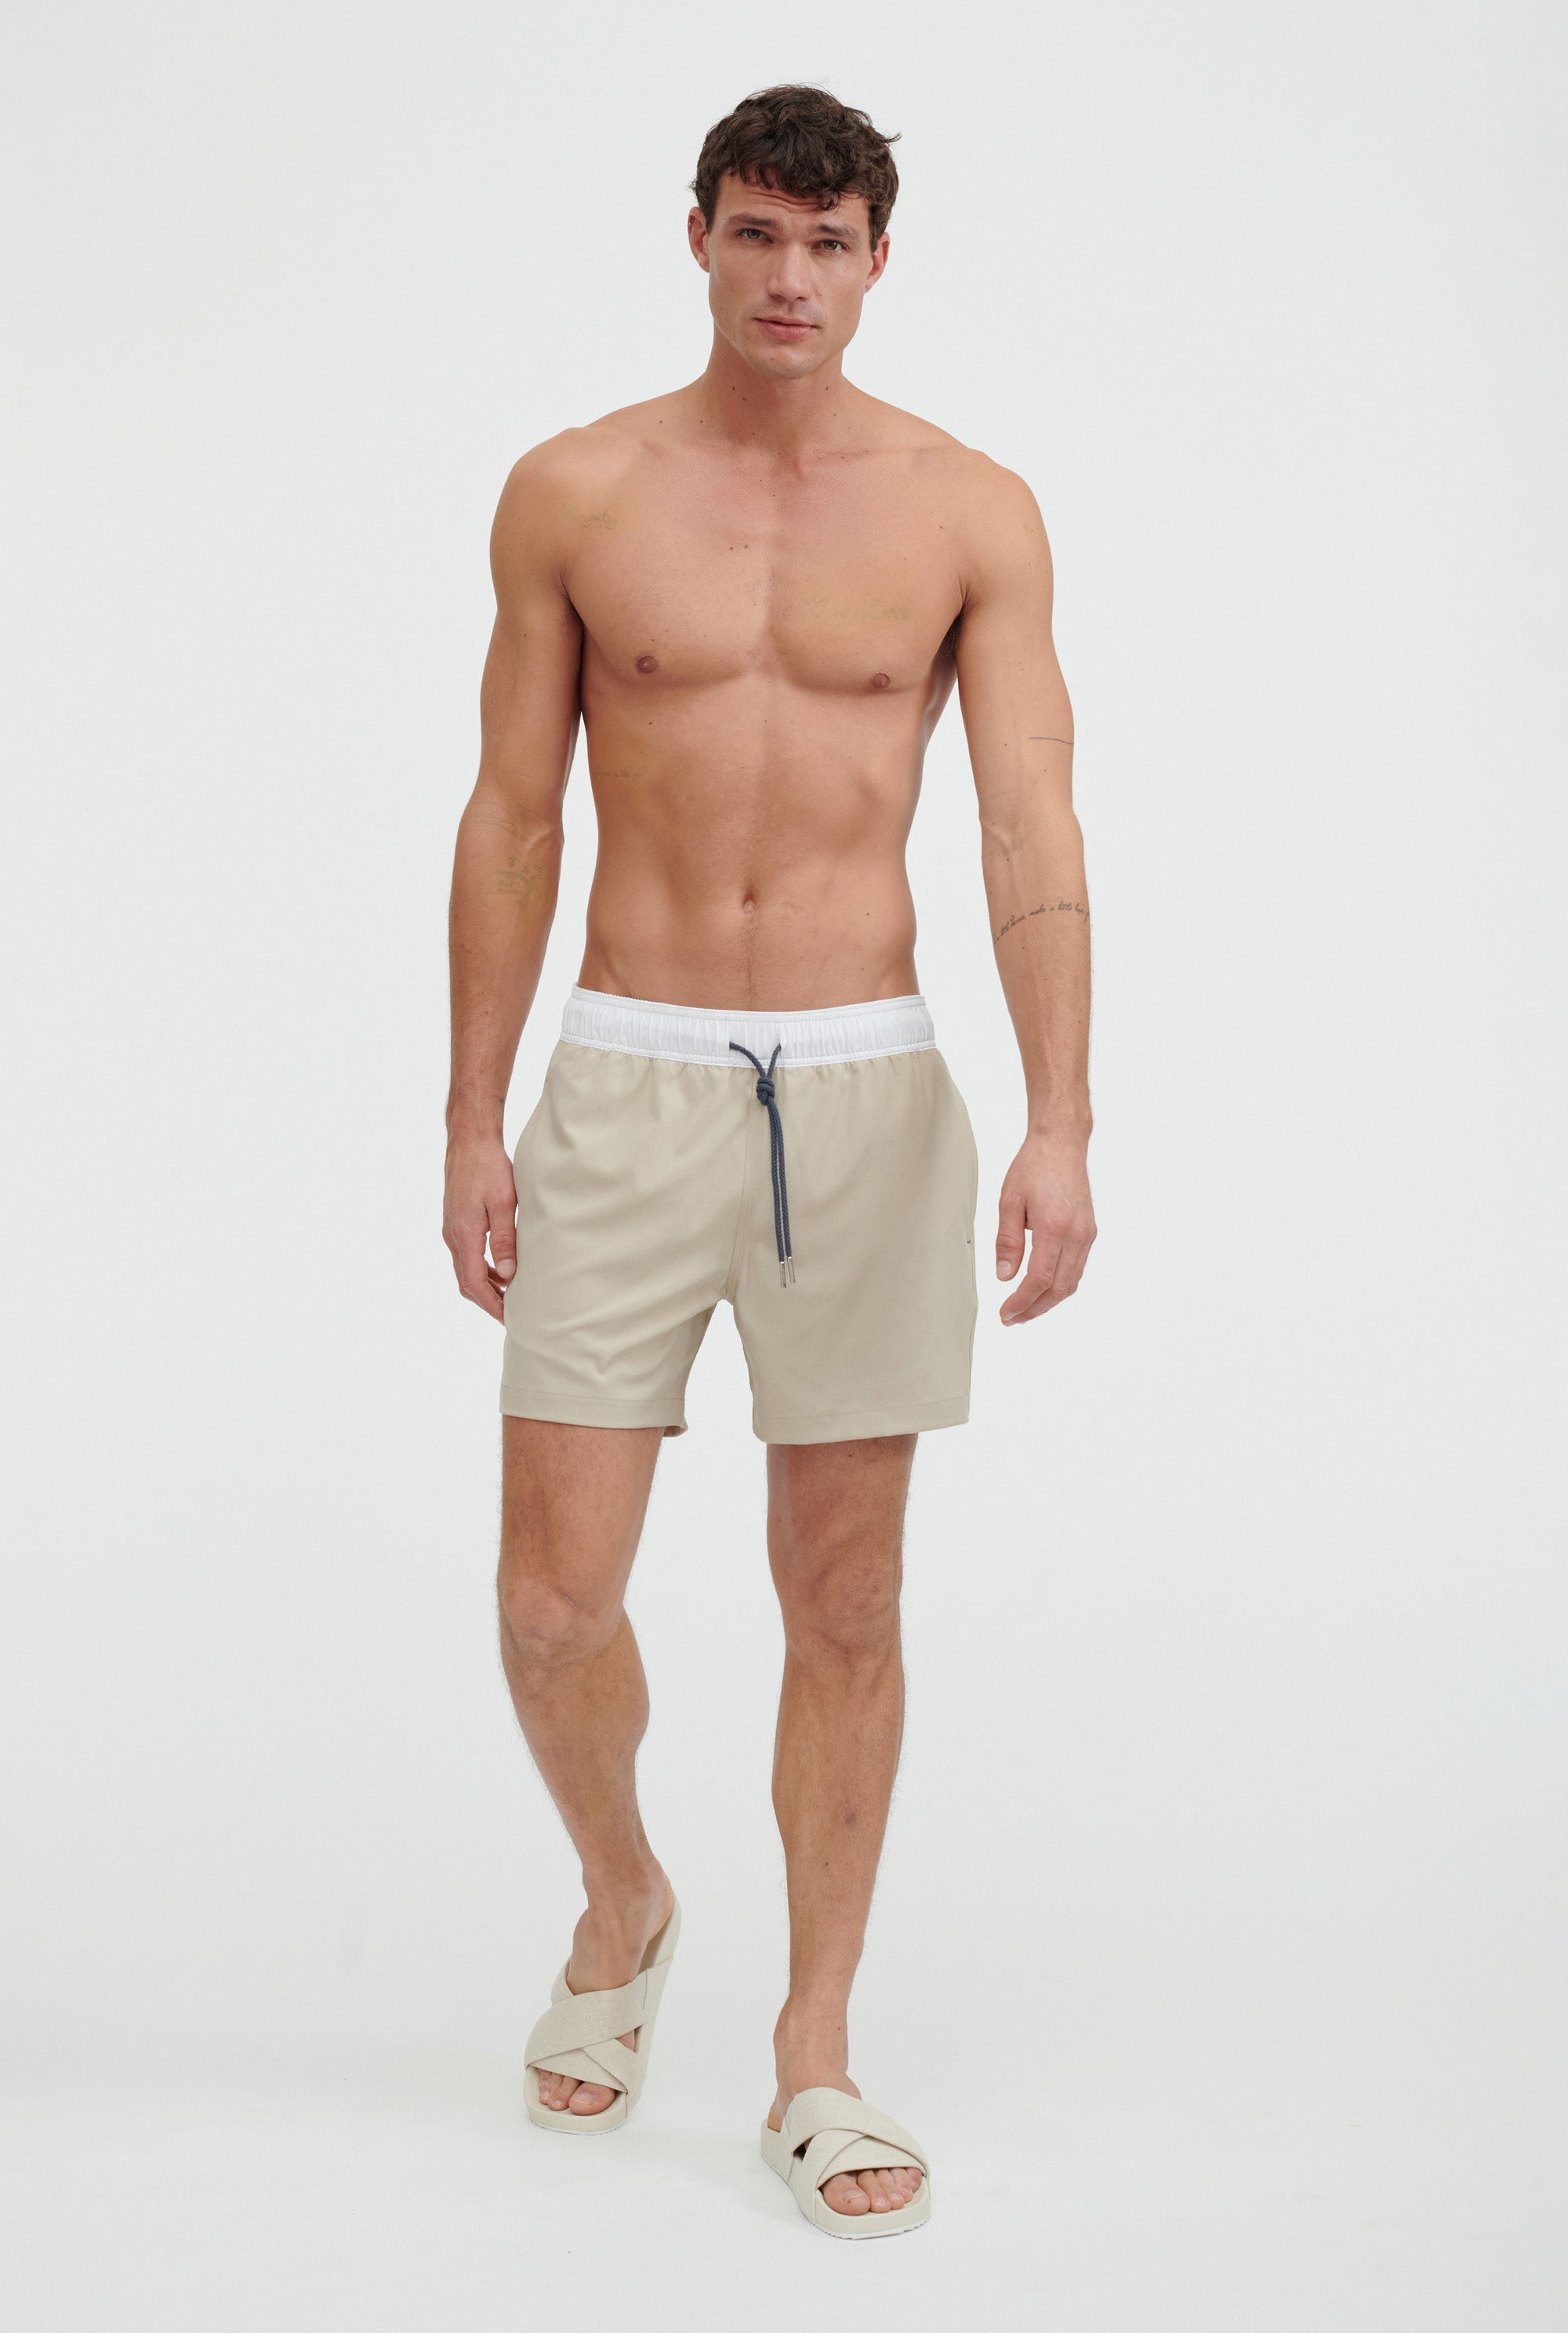 Solid Stretch Swim Short - Taupe/White Band